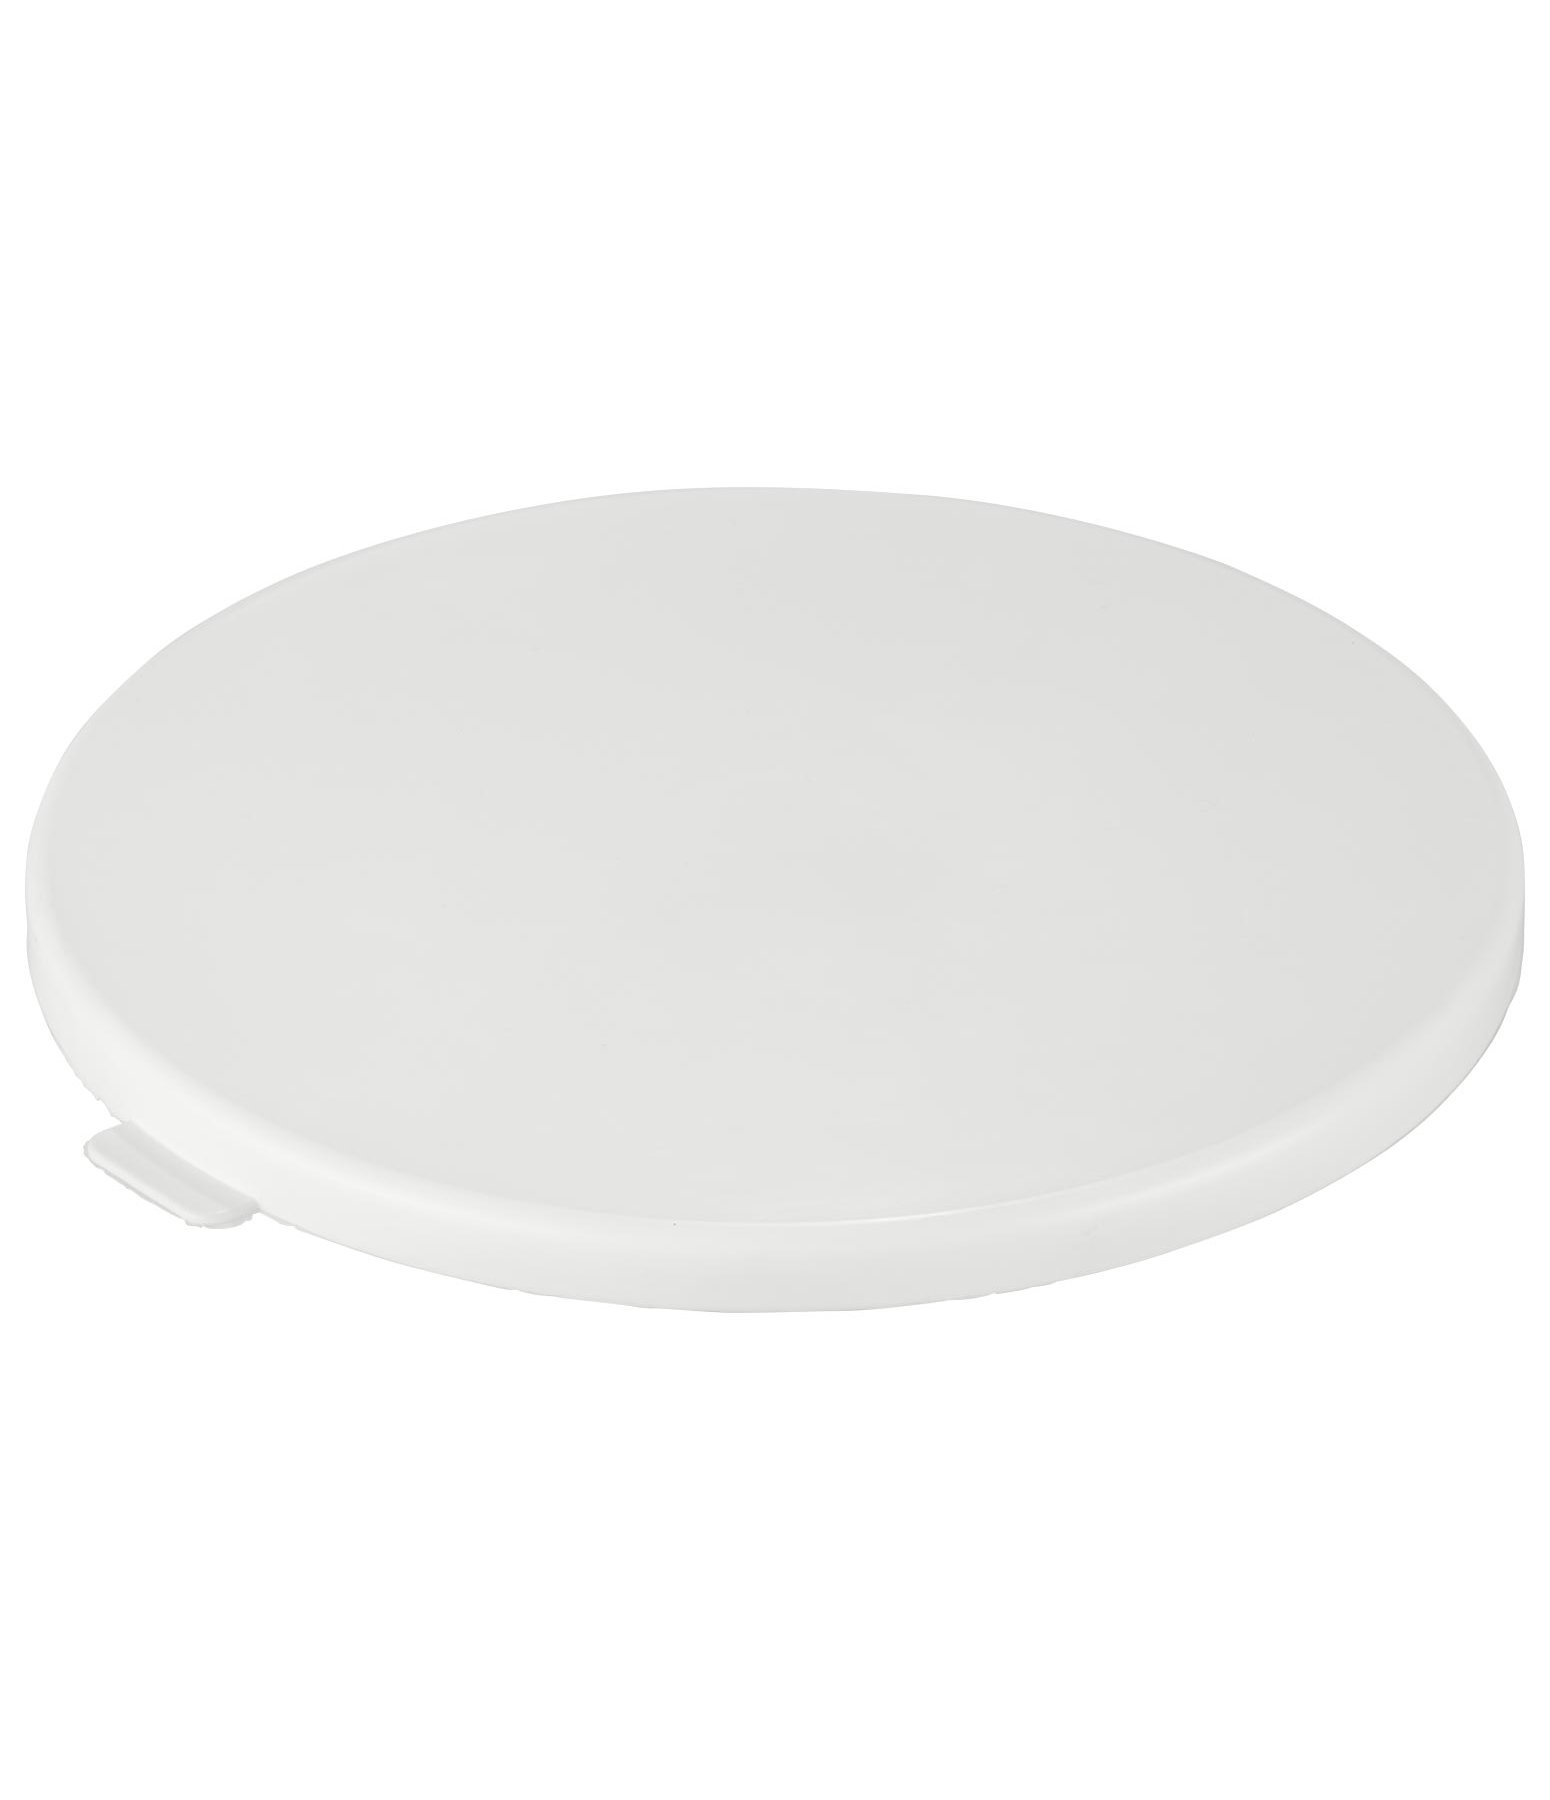 Lid for Muesli Bowl